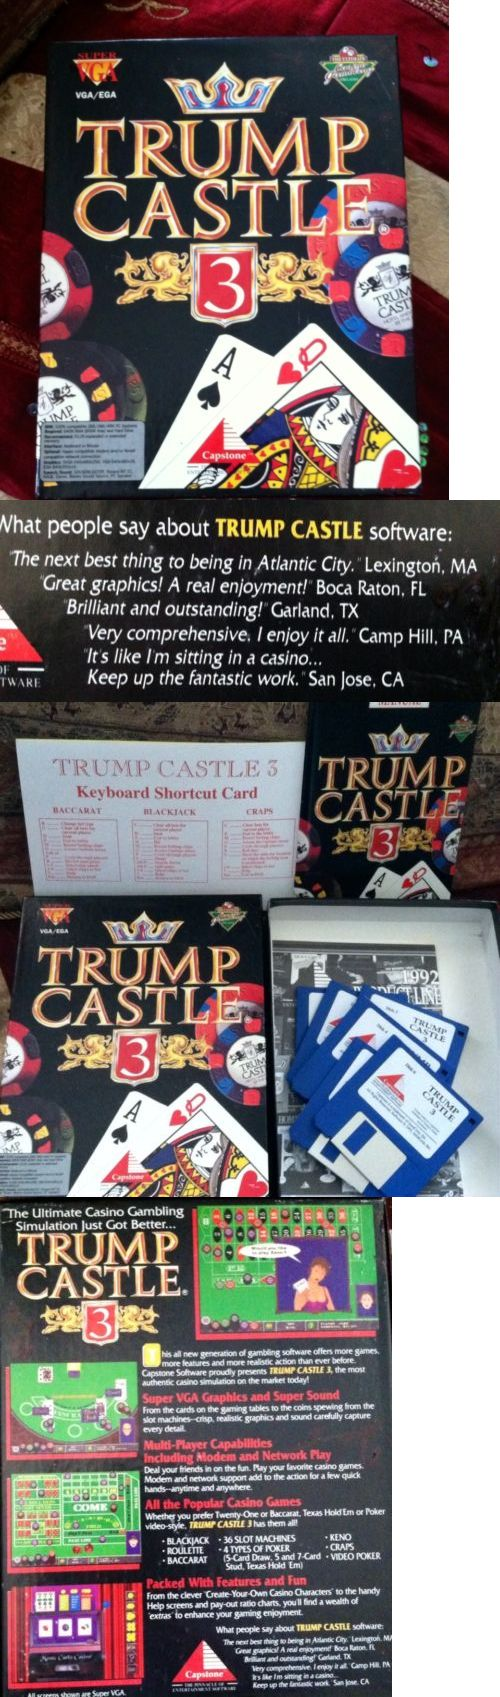 donald trump: Donald Trump President Collectible Trump Castle Atlantic City Vintage Pc Game -> BUY IT NOW ONLY: $7.95 on eBay!